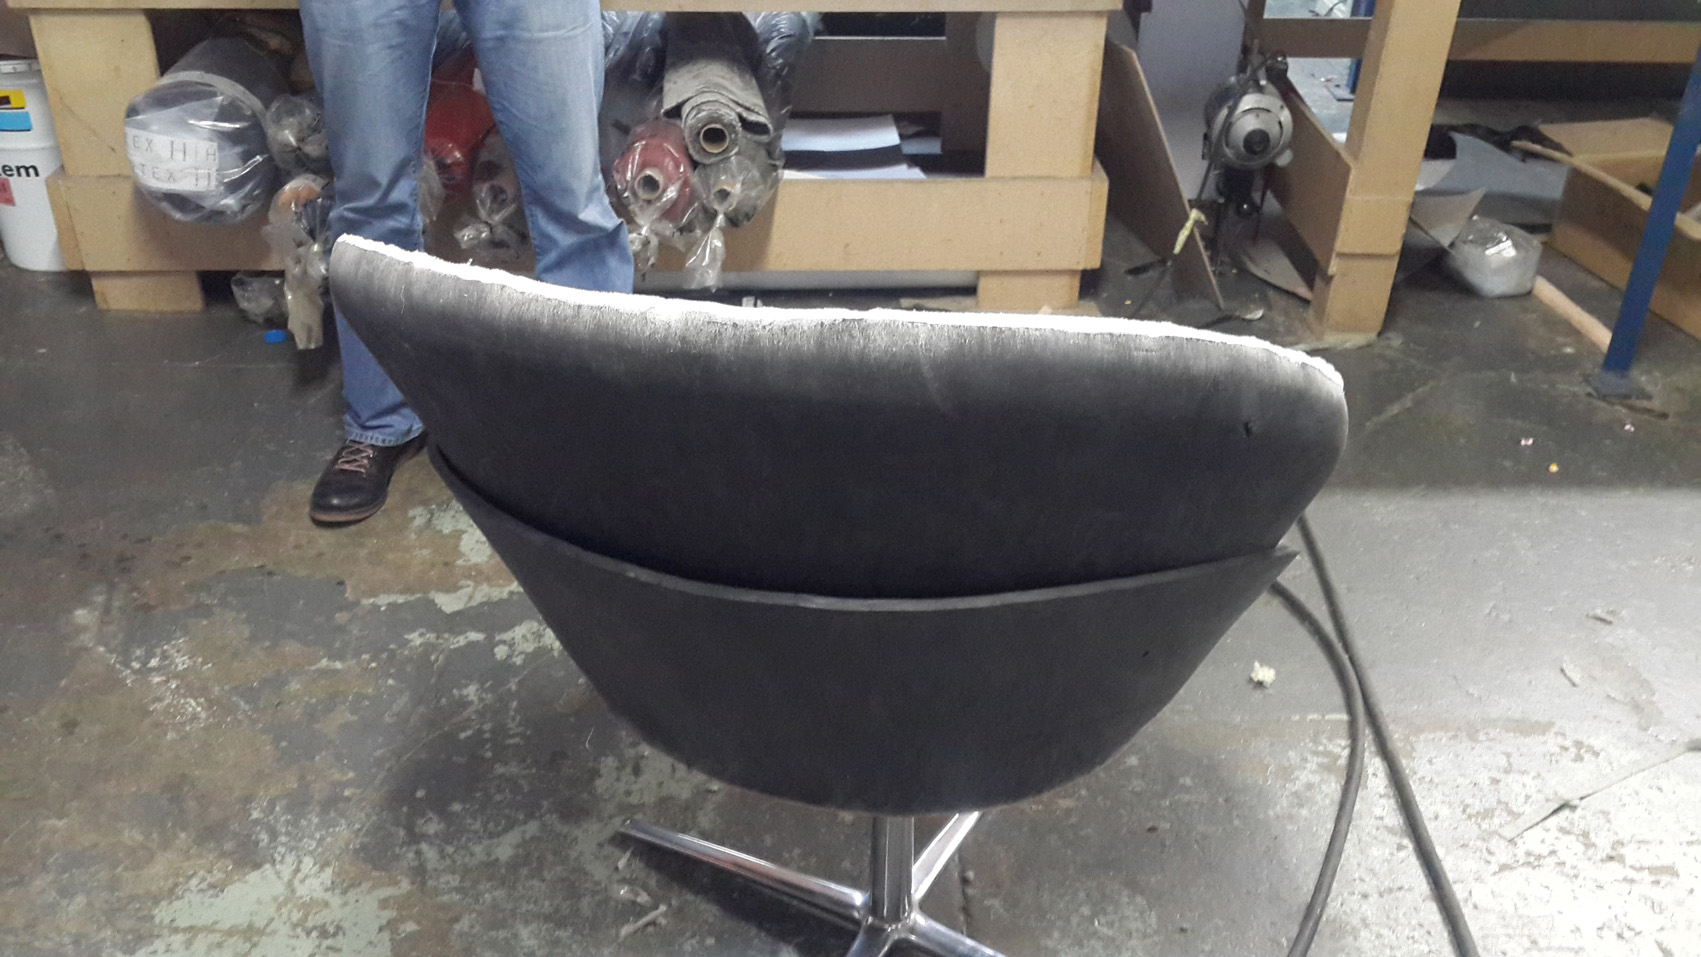 Creating the CURVES on the reception chair